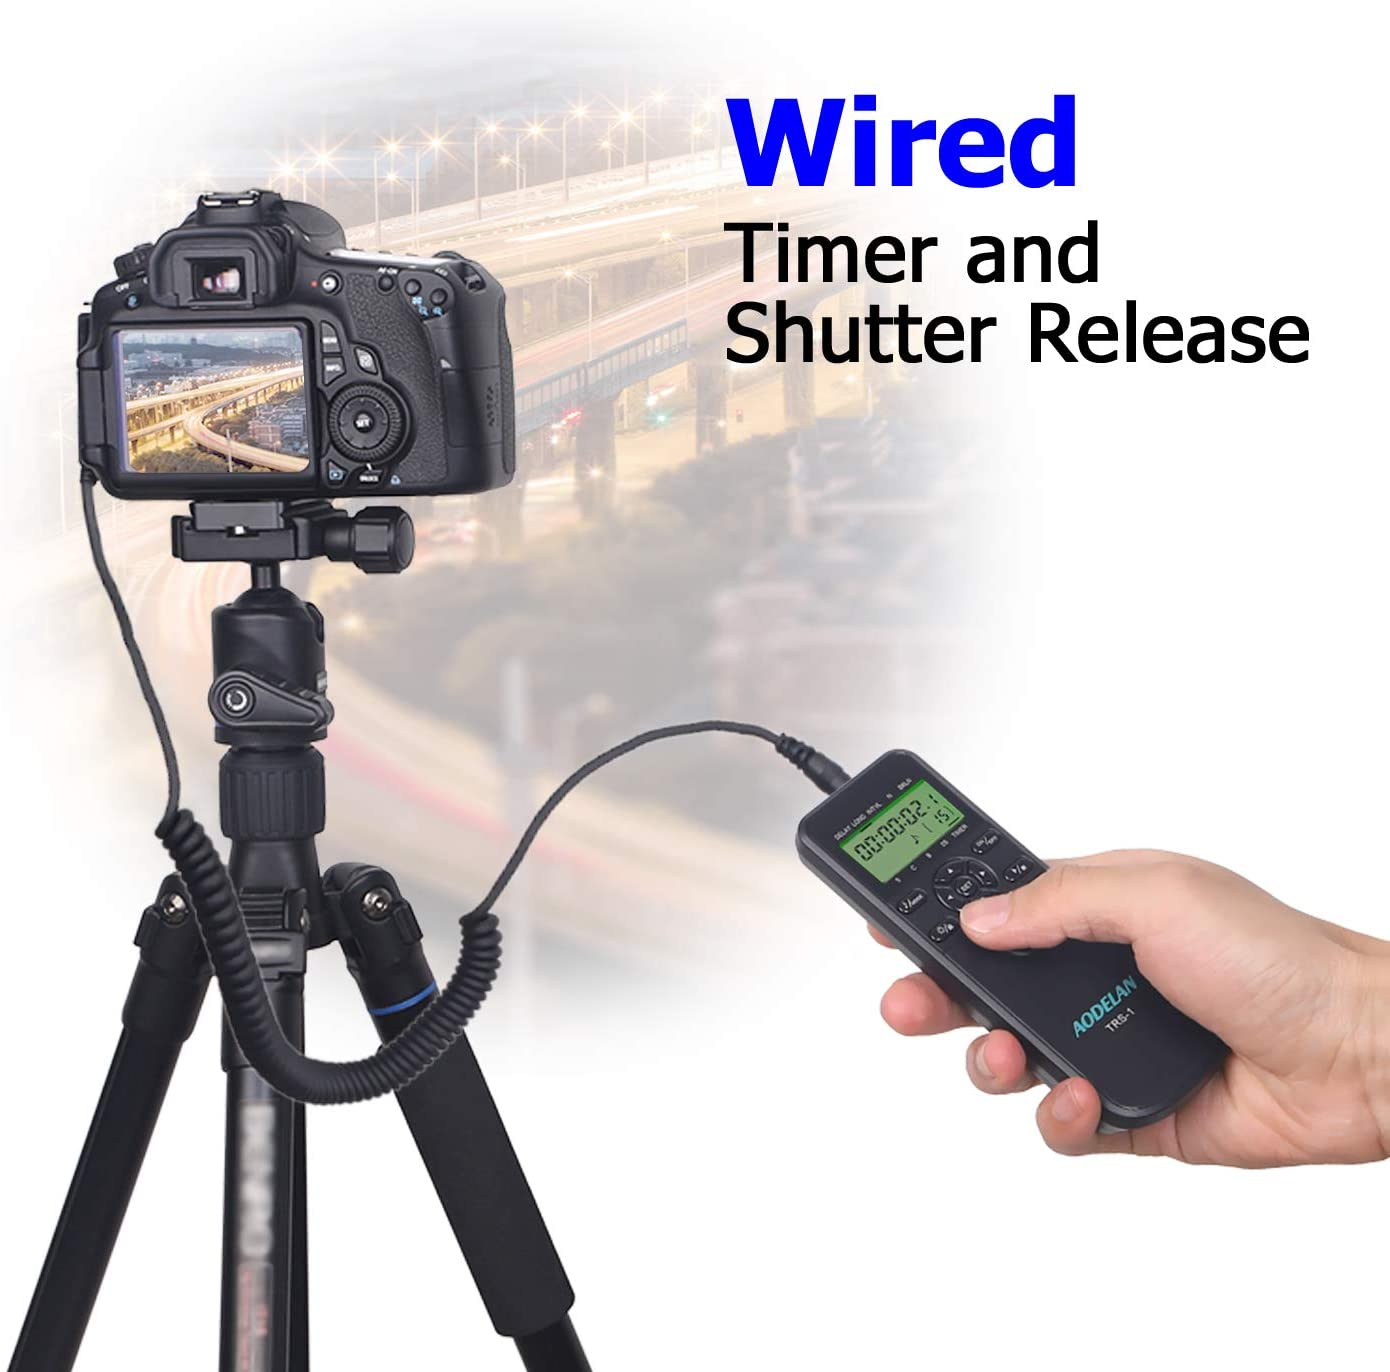 Timer Remote Shutter Release and Intervalometer with LCD and HDR for Nikon Z6 D800 and for Fujifilm Kodak Cameras D7000 Z7 D7100 D750